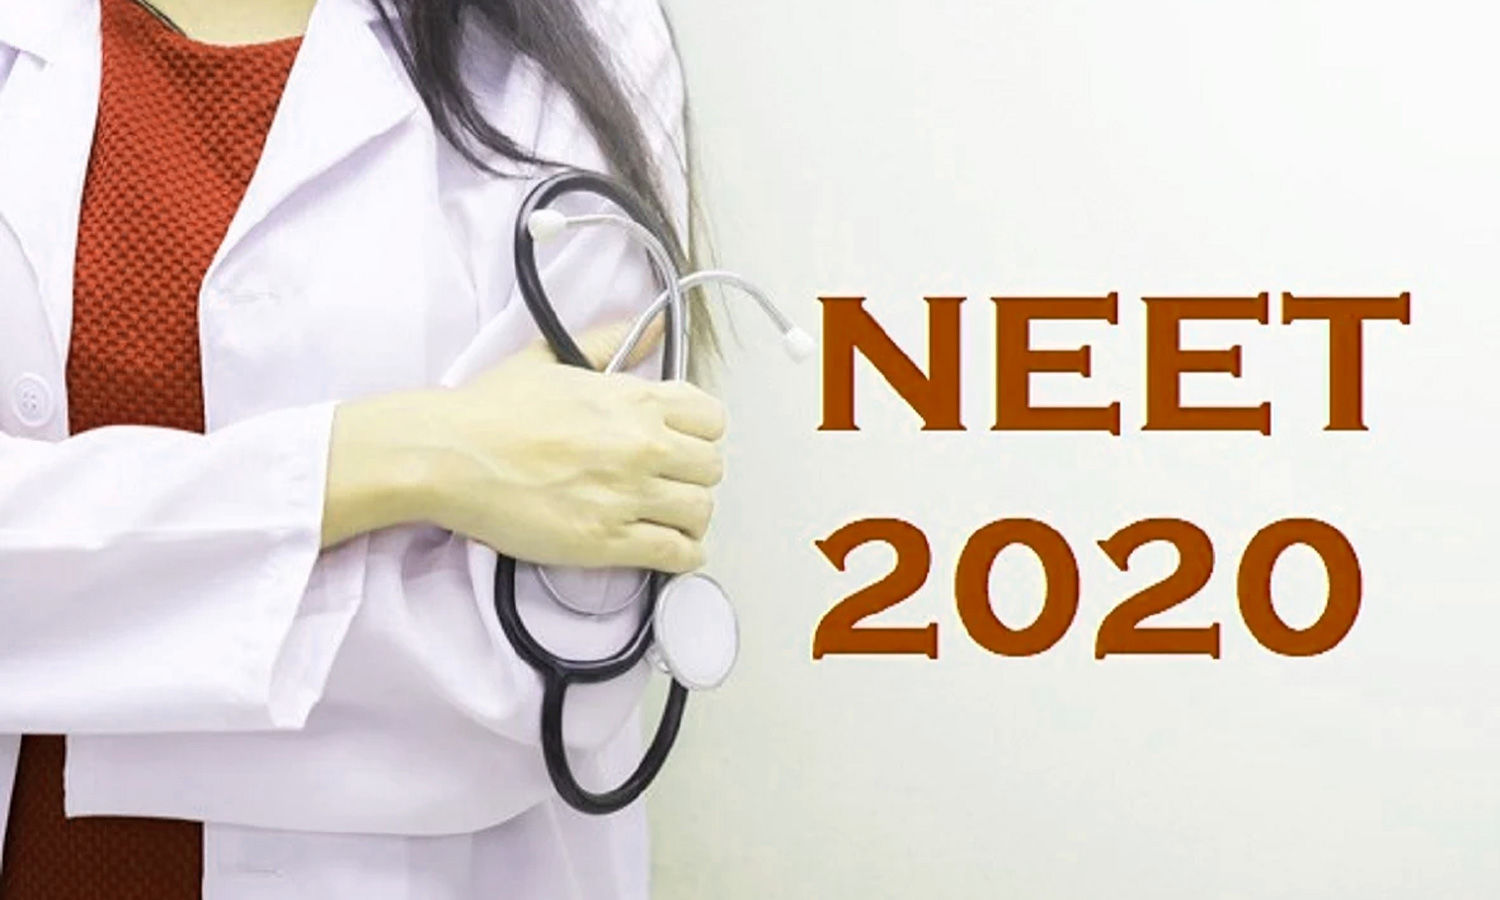 NO postponement on NEET 2020: SC dismisses petition